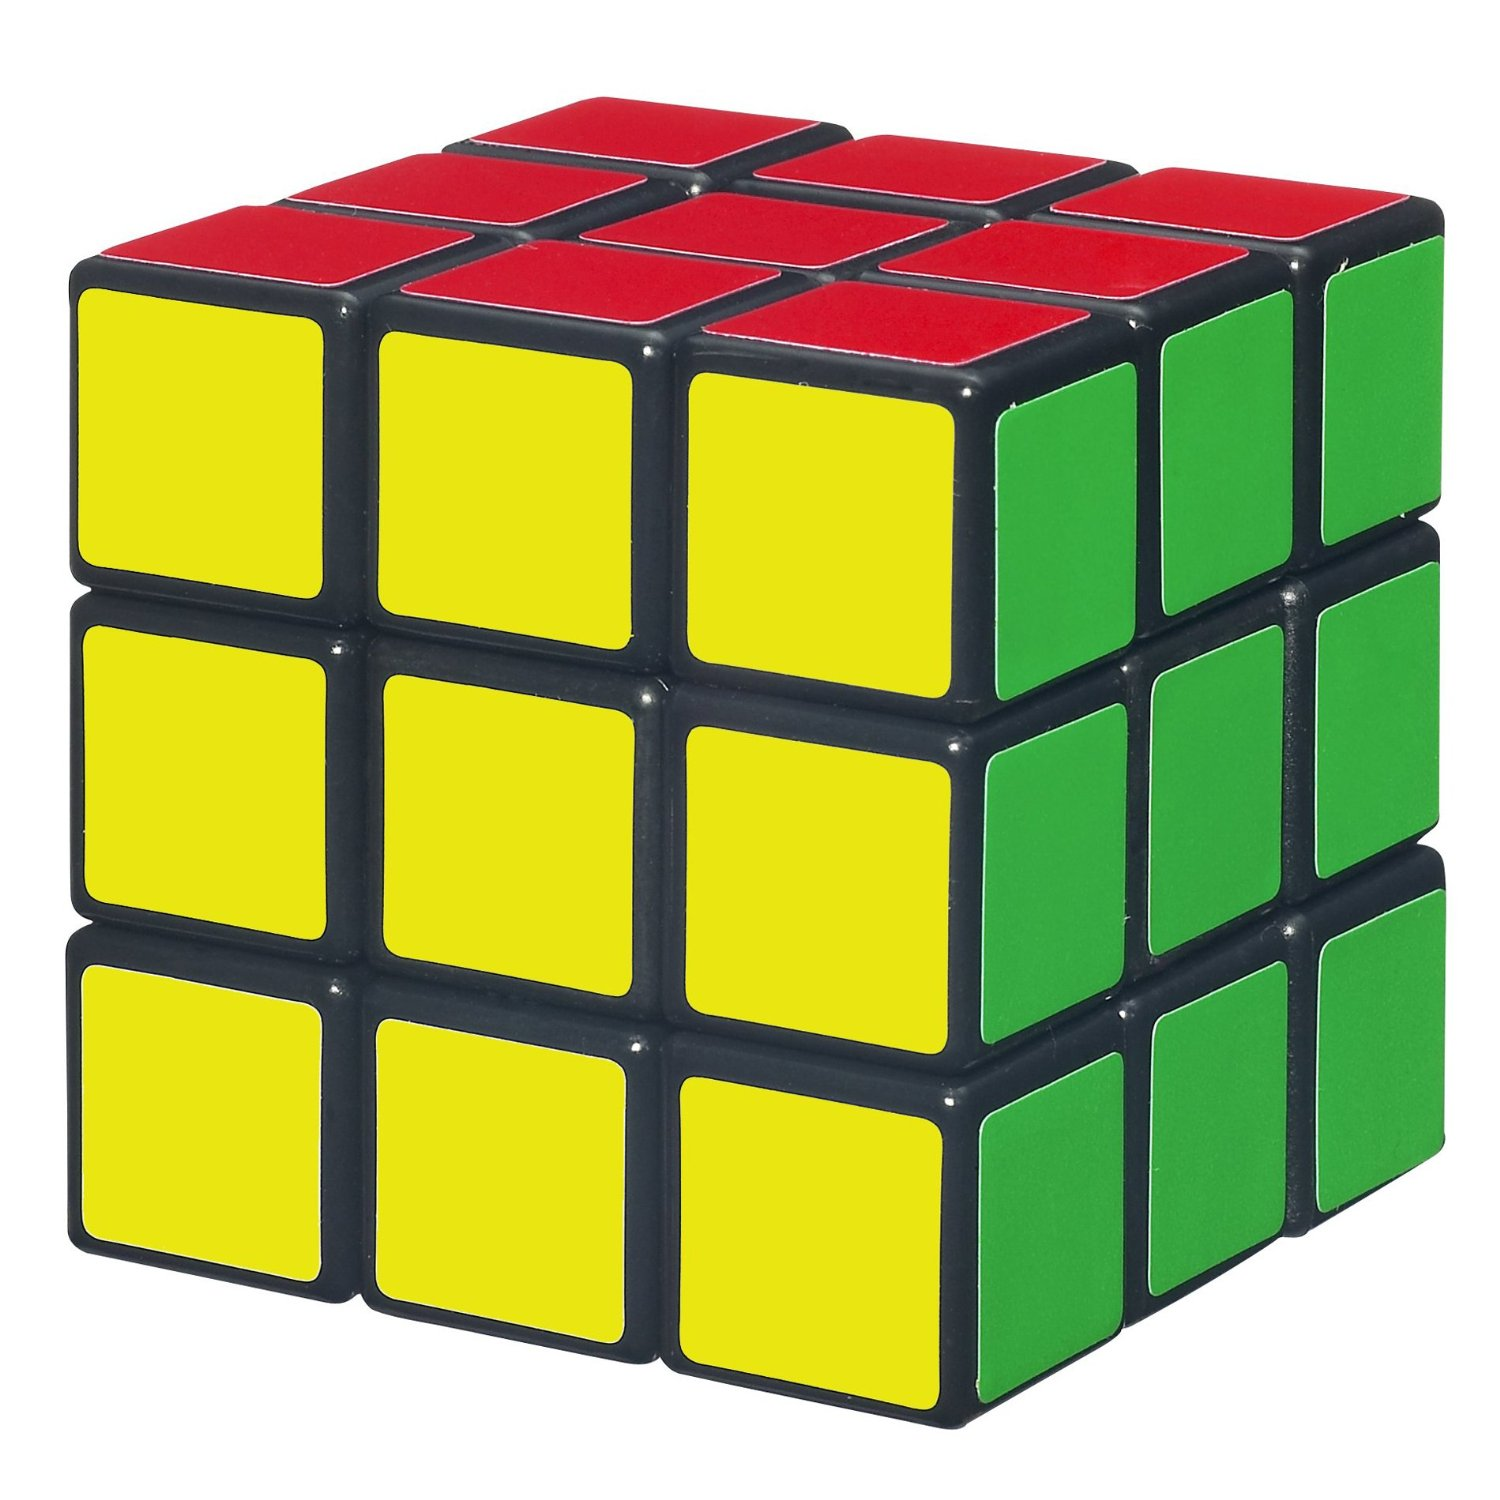 advertise your text or lines while solving a Rubik's Cube